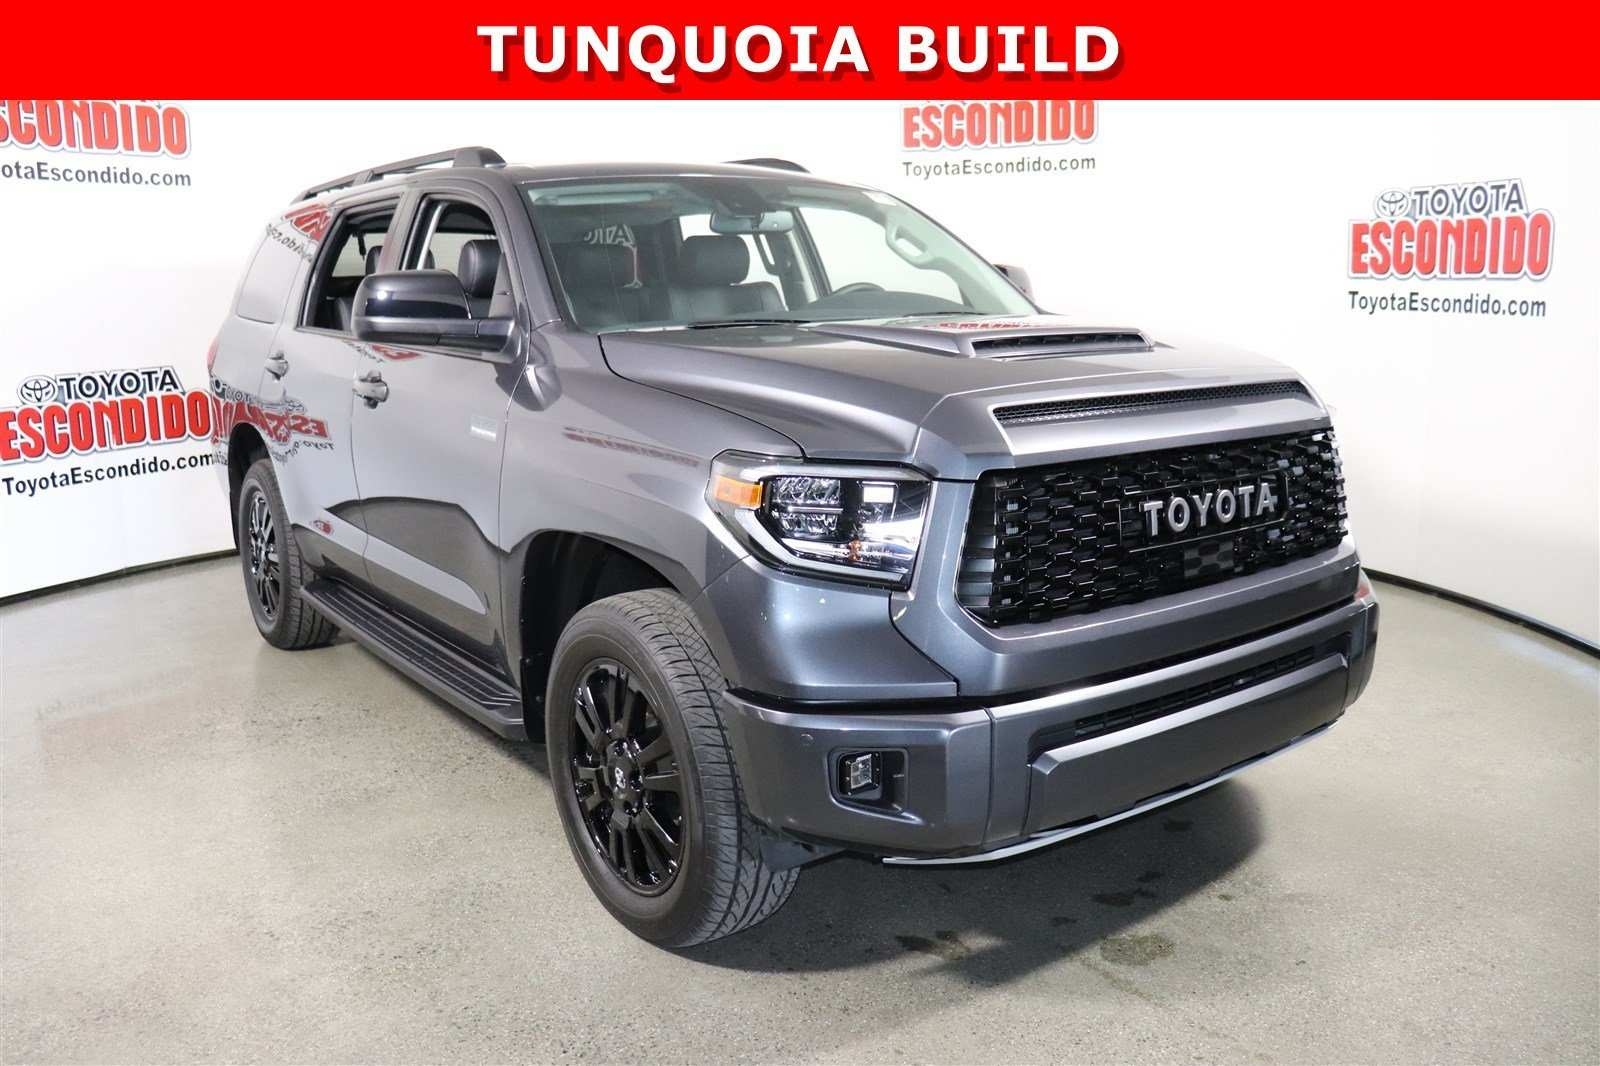 69 The 2019 Toyota Sequoia Review And Release Date